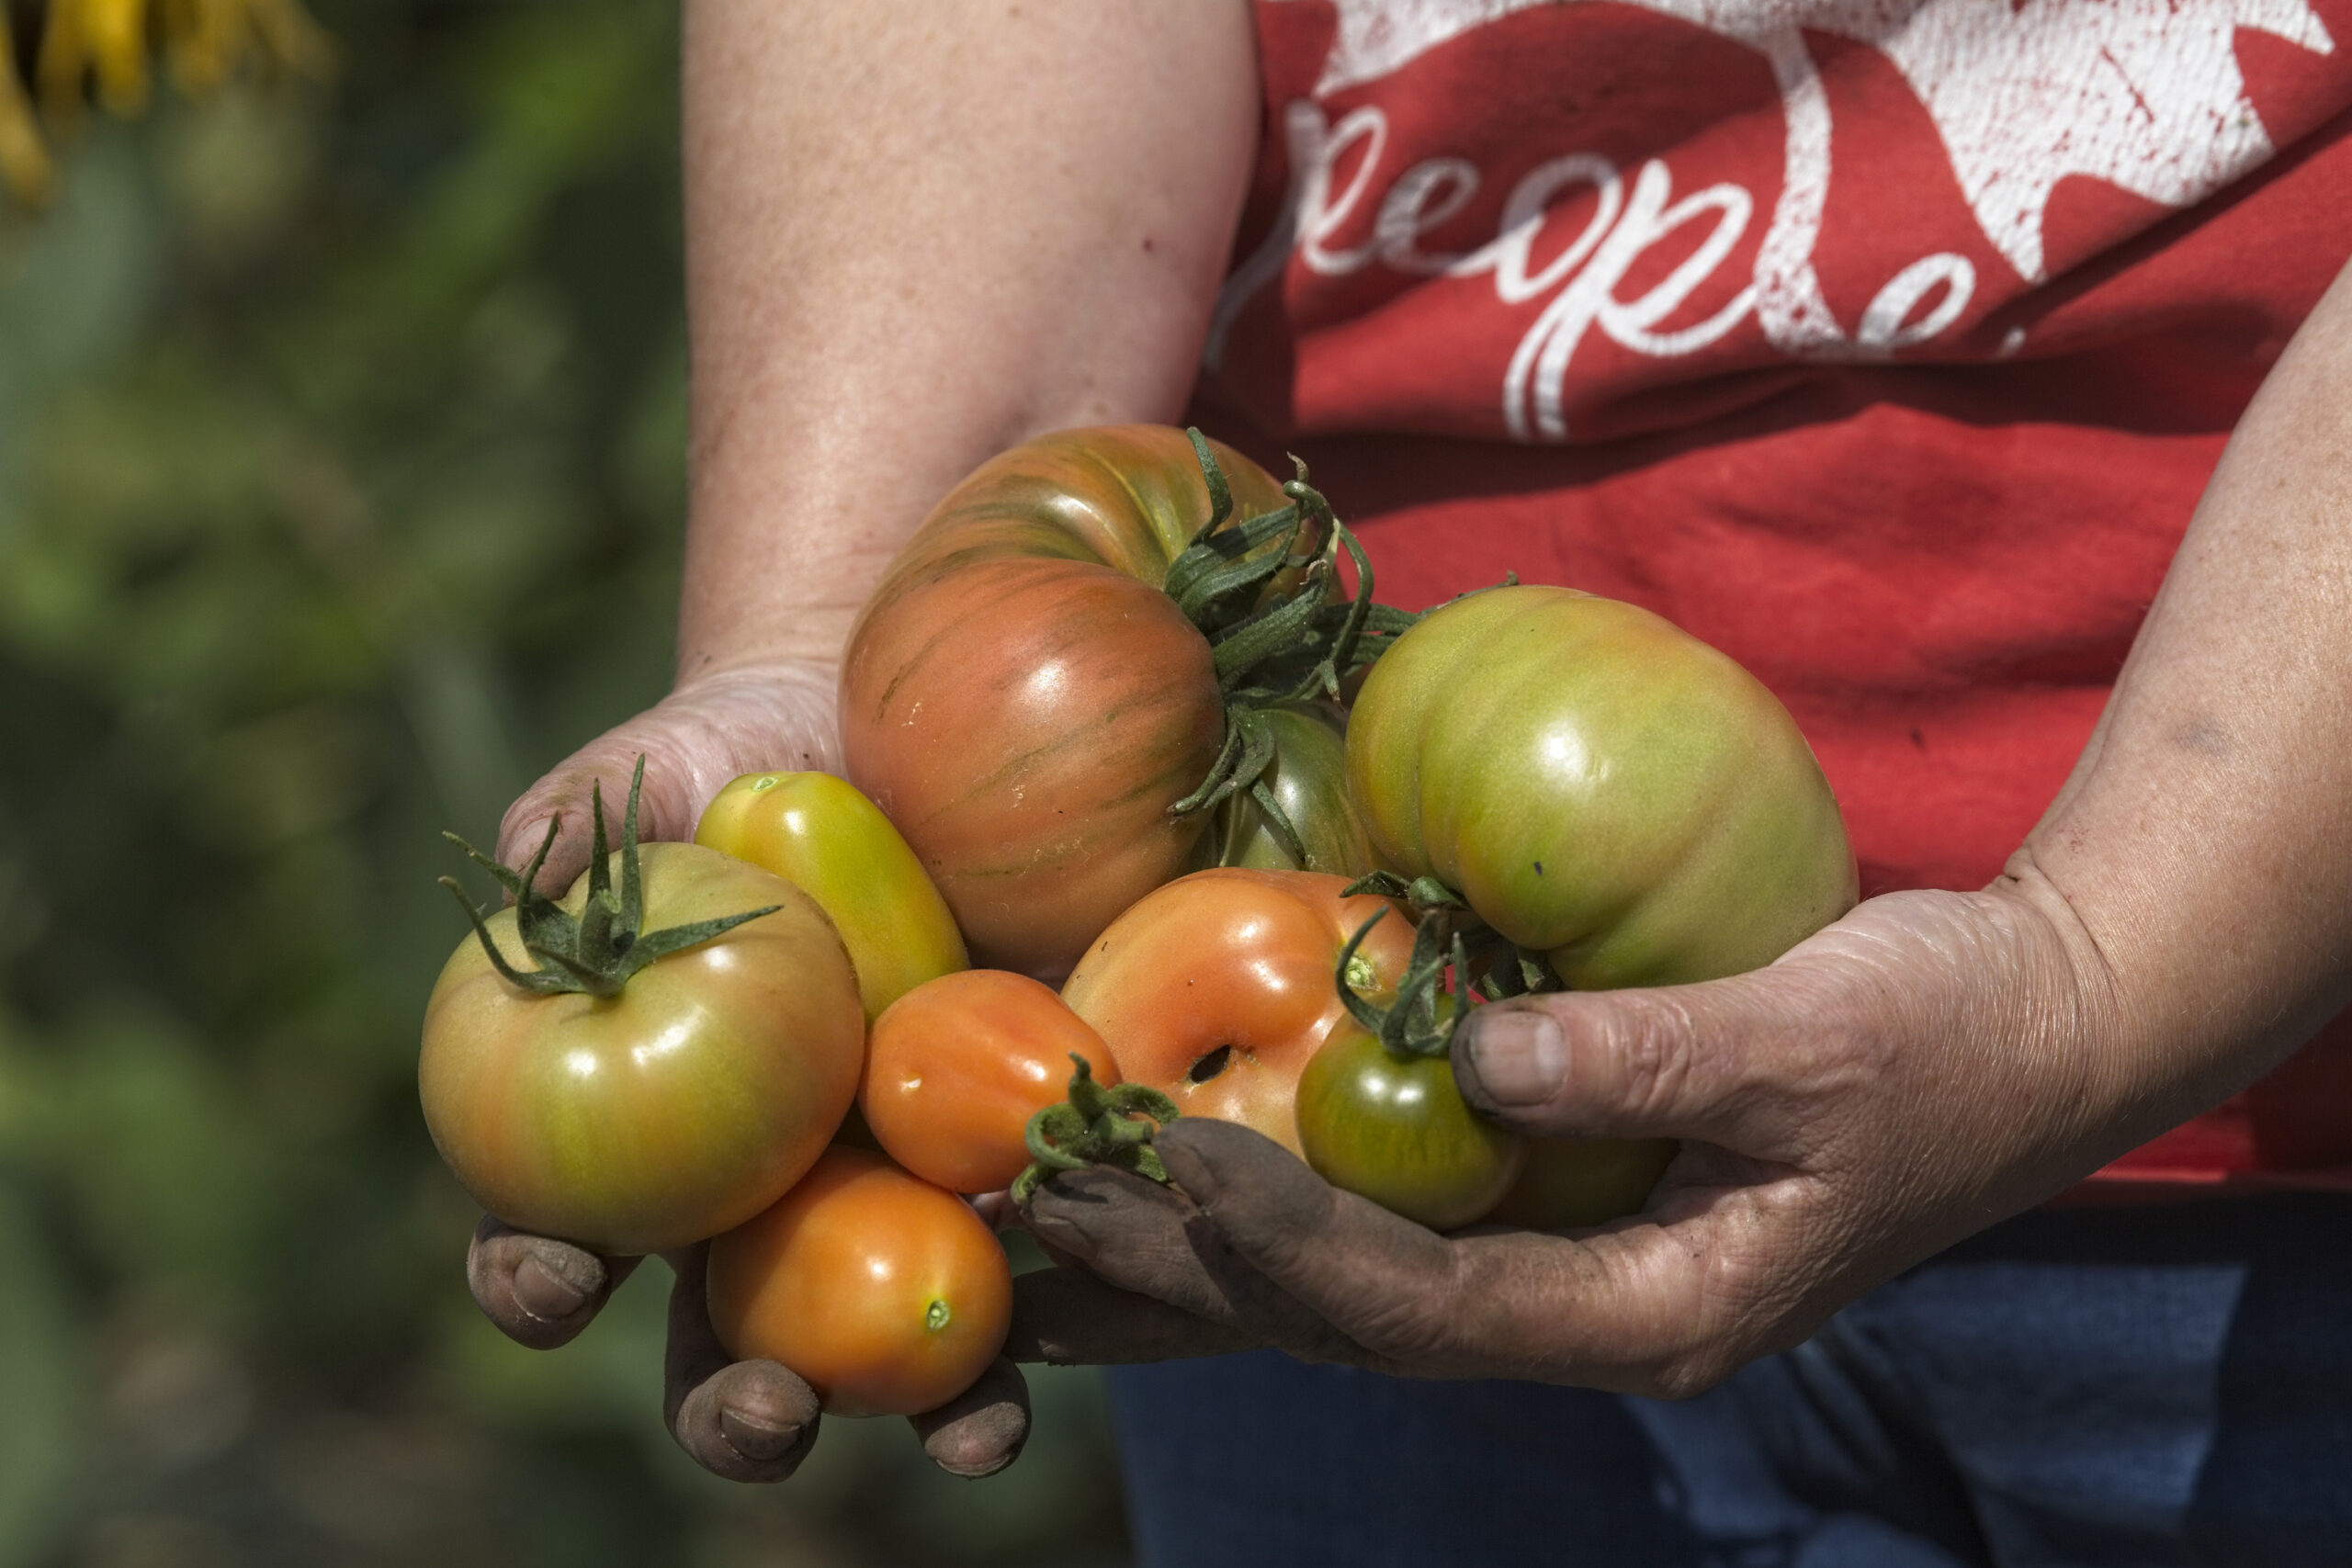 tomatoes of various sizes in someones hands